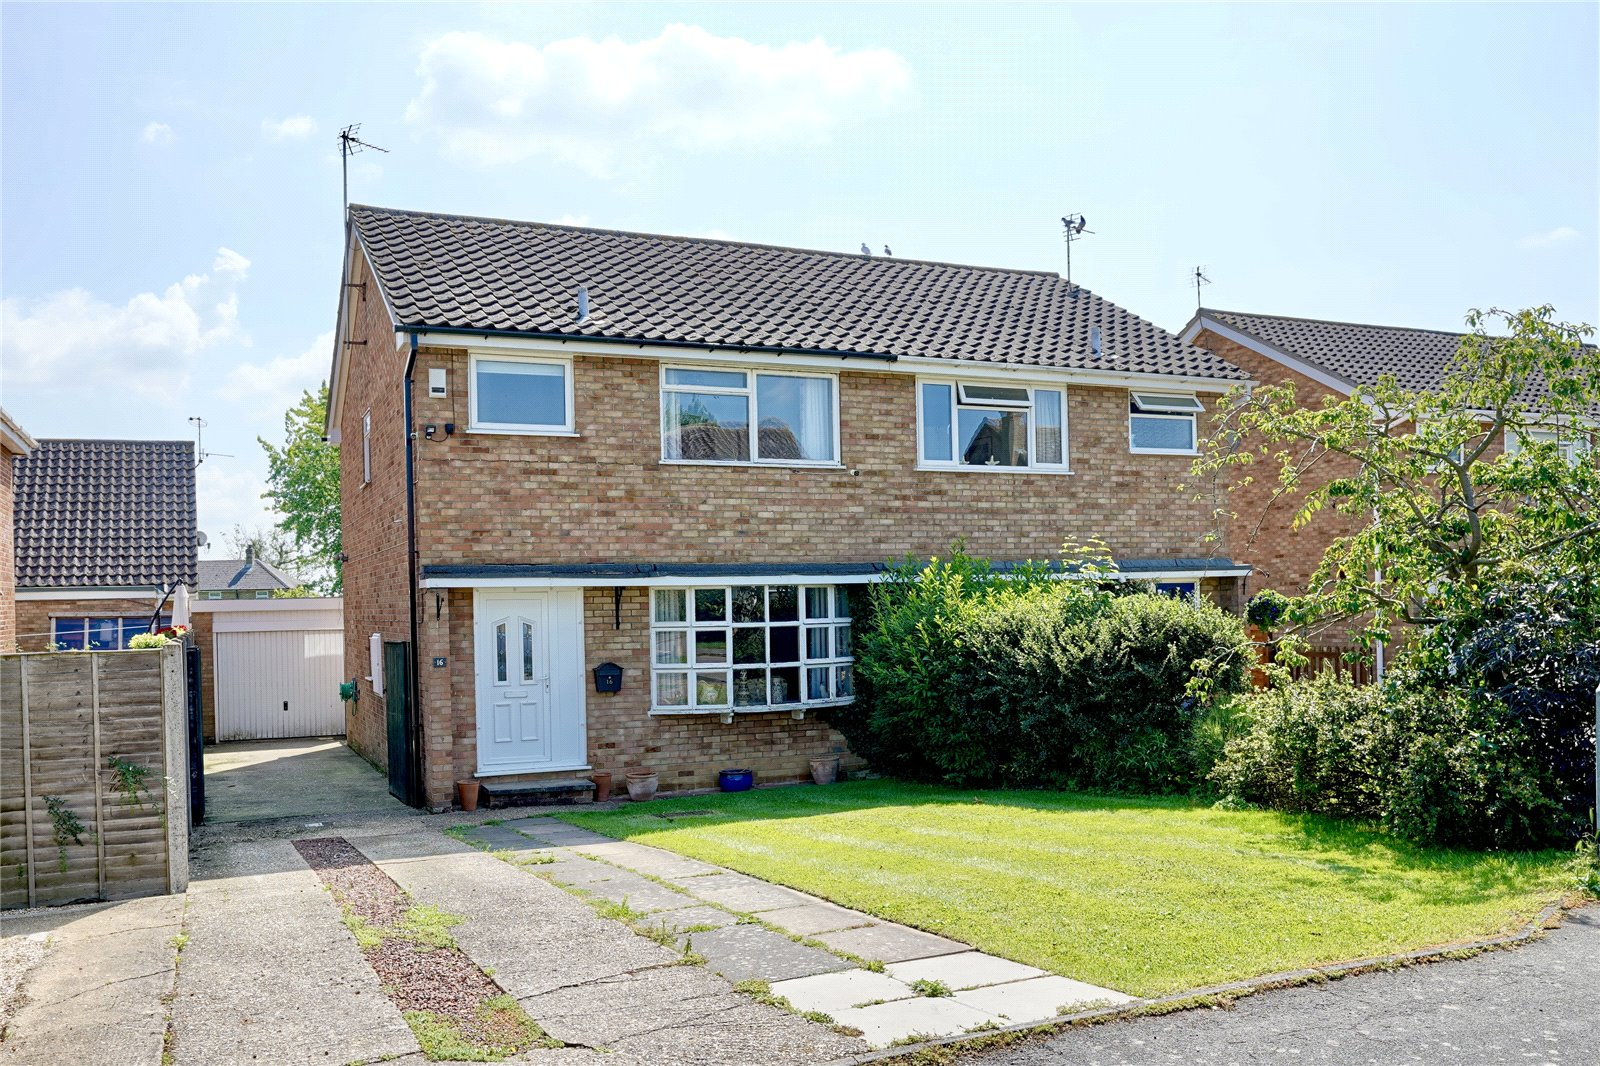 3 bed house for sale in Beachampstead Road, Great Staughton, PE19